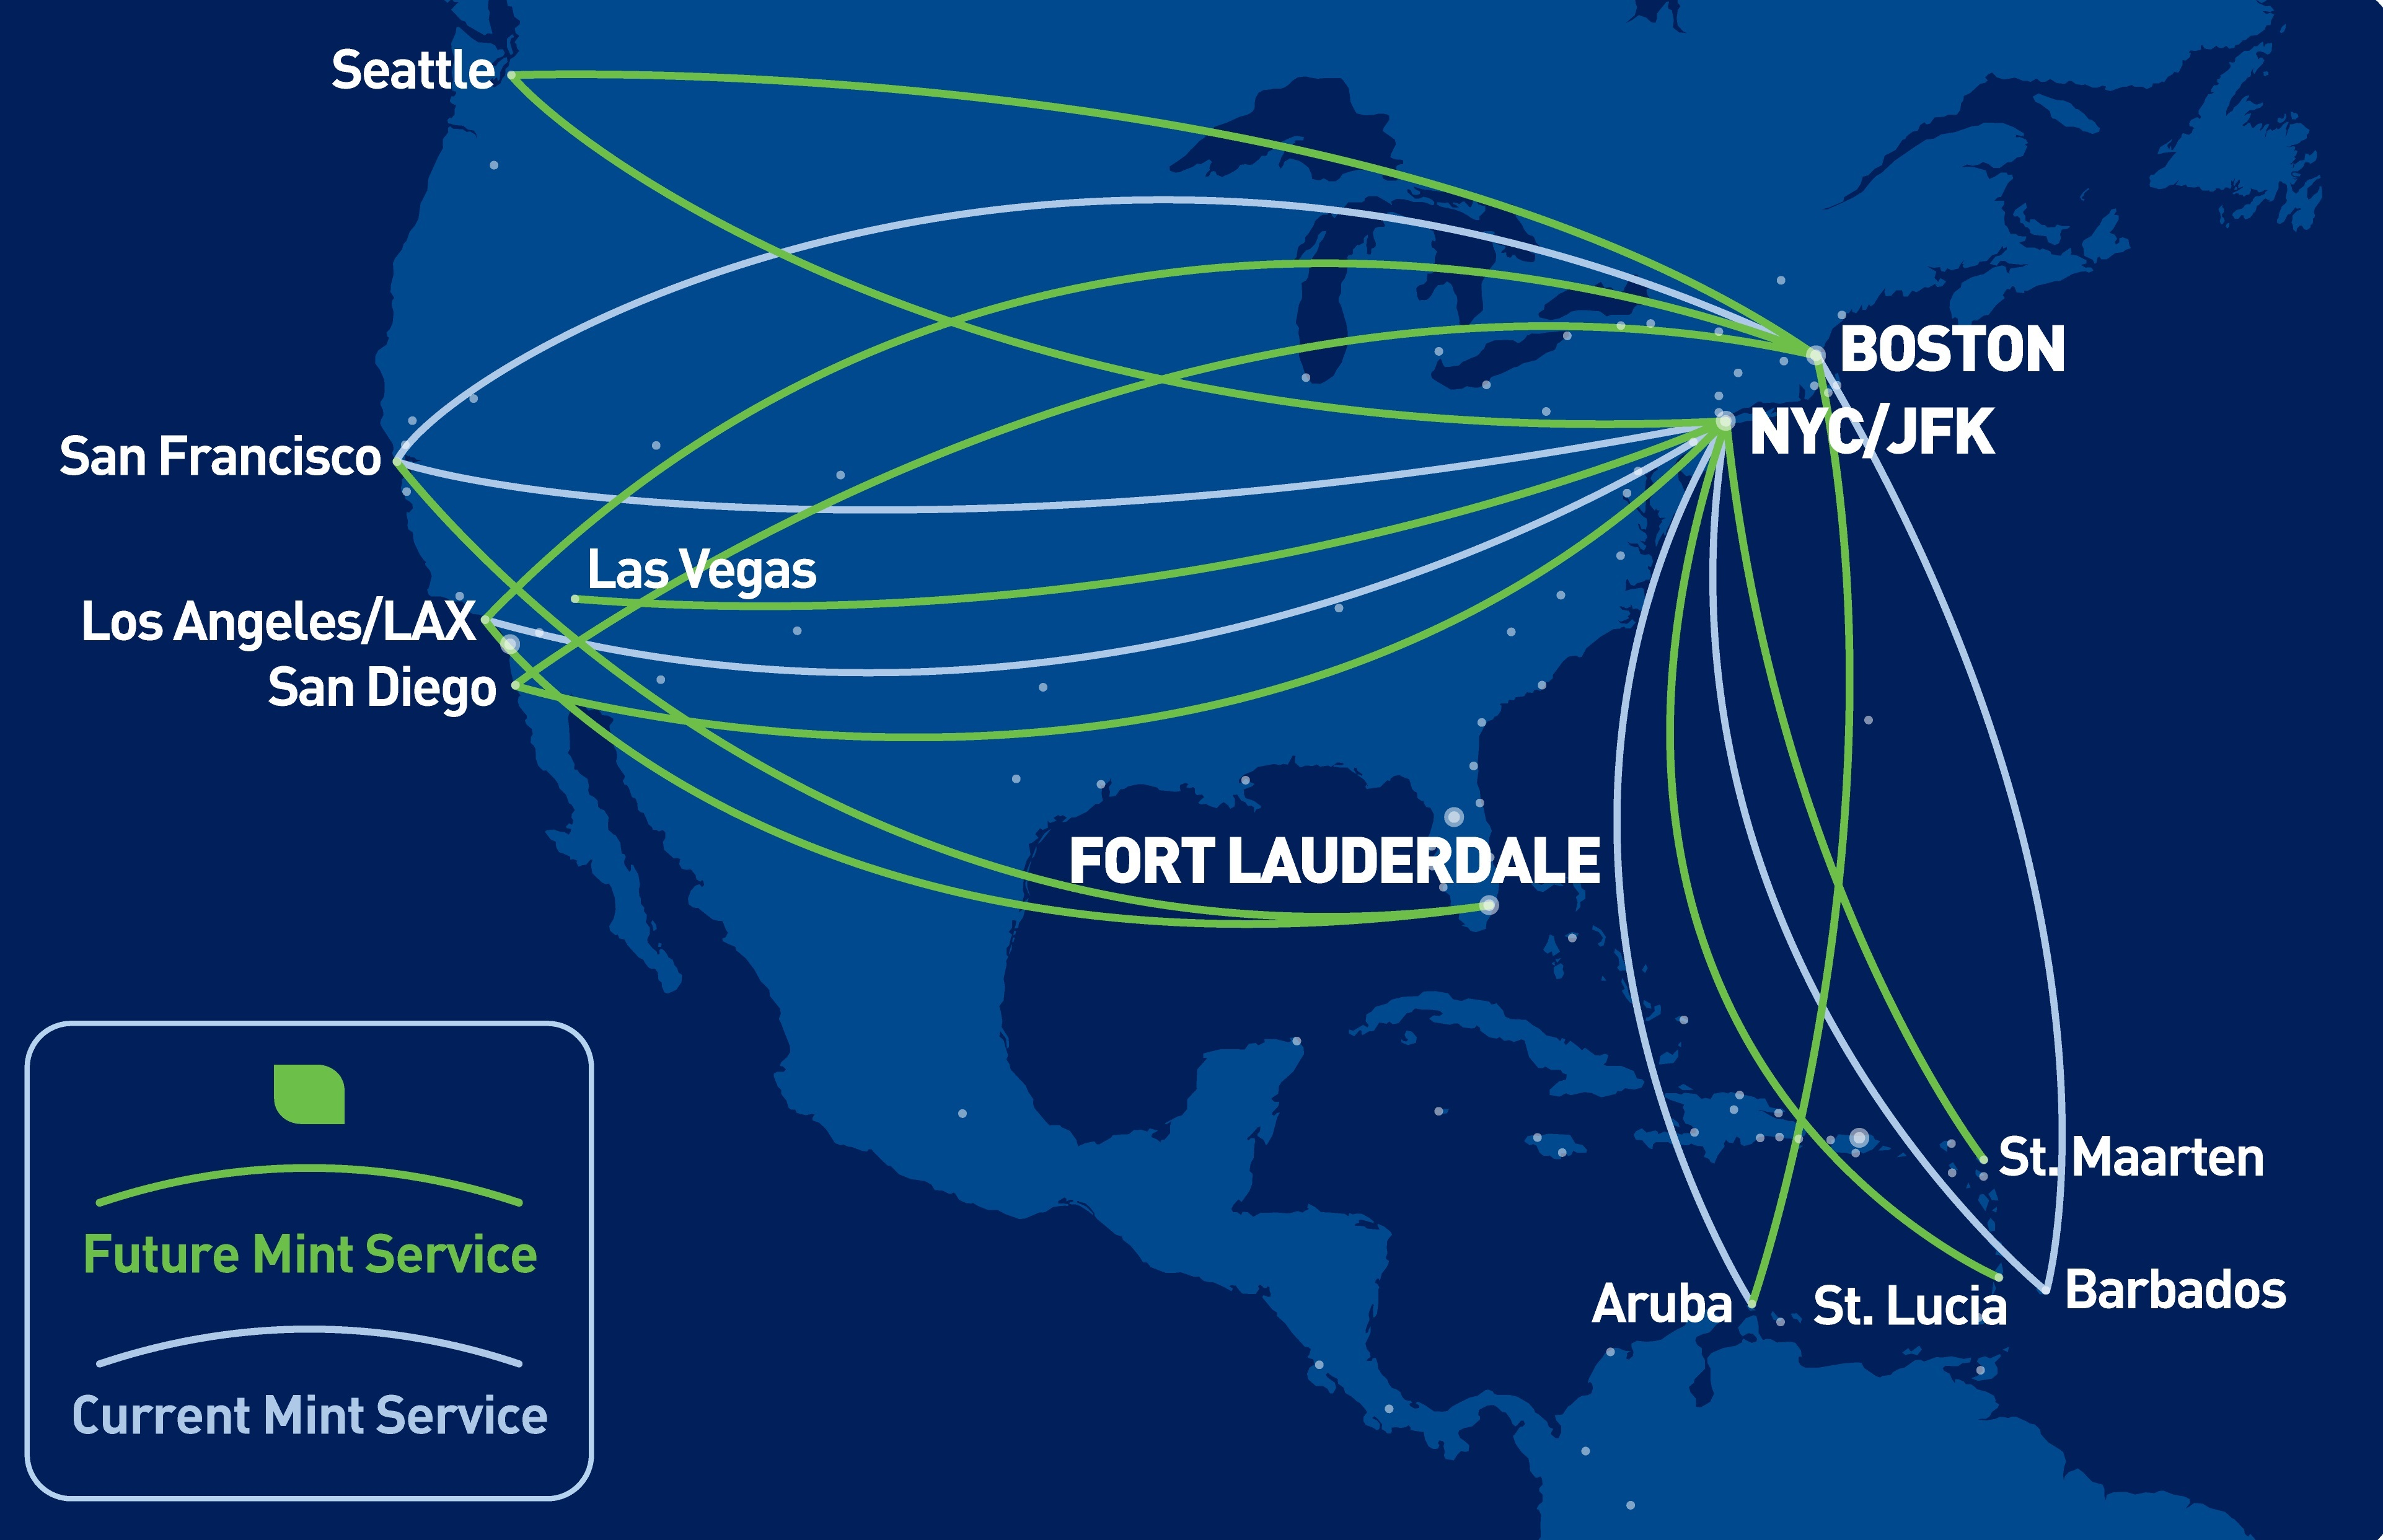 12news Com Jetblue Flat Bed Seats Coming To More Cross